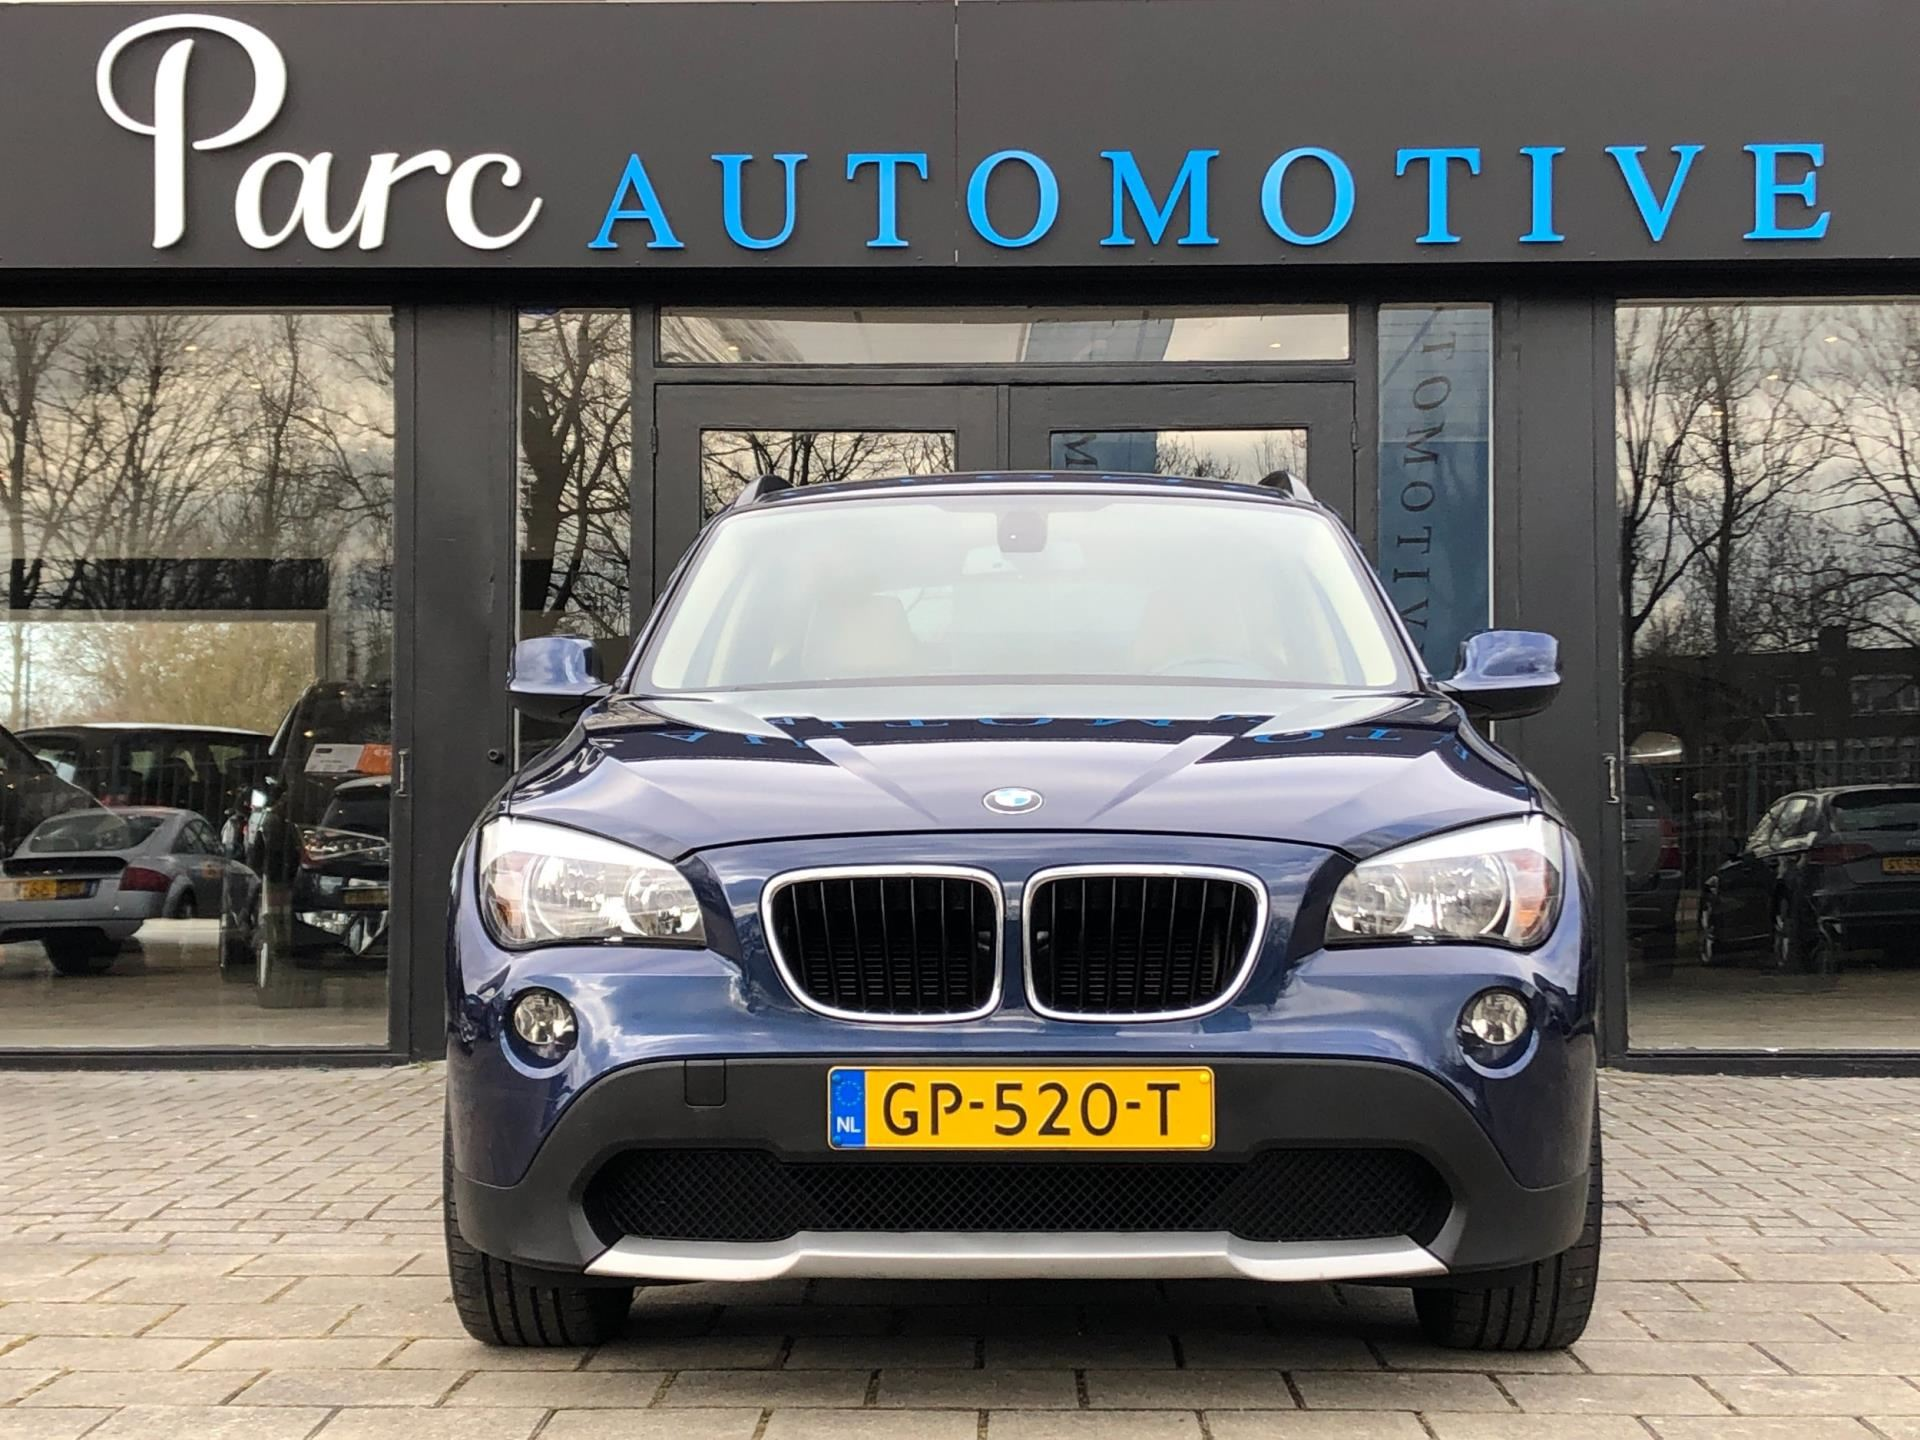 BMW X1 occasion - Parcautomotive